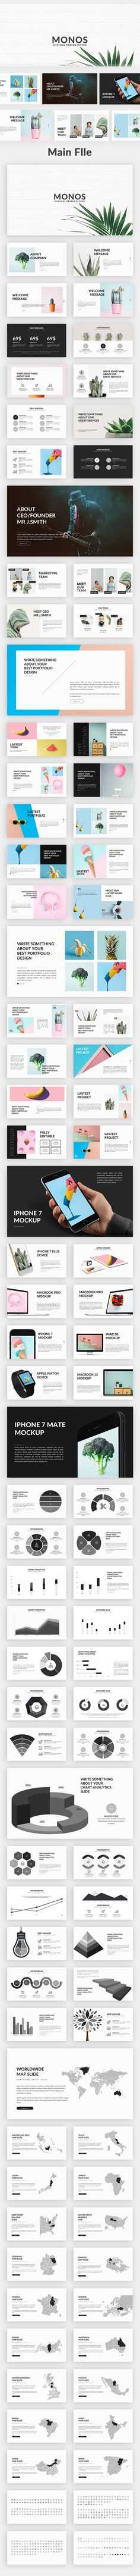 Infographics , UI Design et Web Design - Monos - Minimal Powerpoint Template - Presentation Templa. Web Design, Slide Design, Book Design, Layout Design, Presentation Deck, Presentation Templates, Portfolio Presentation, Theme Forest, Mise En Page Magazine